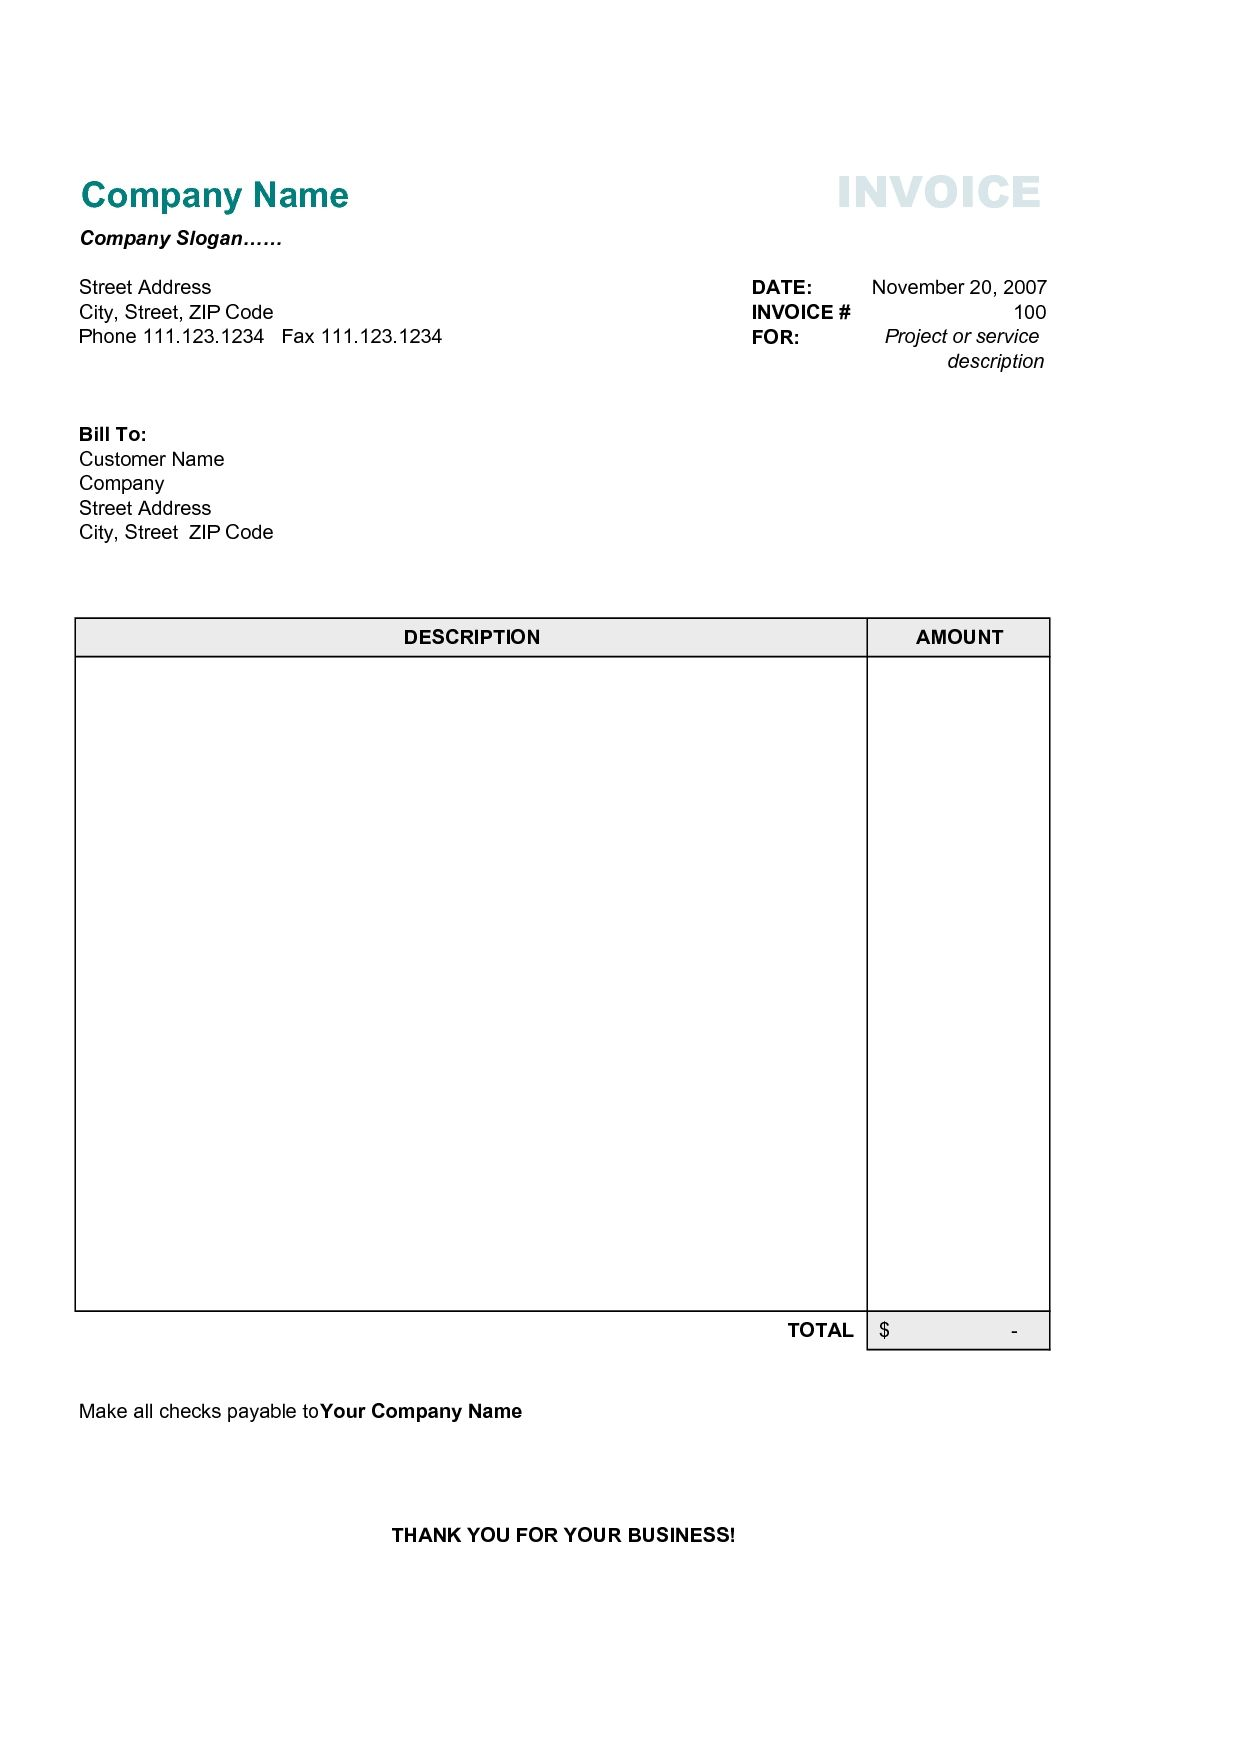 Free Business Invoice Templates Word Endearing Free Business Invoice Template Best Business Template Free Invoice .